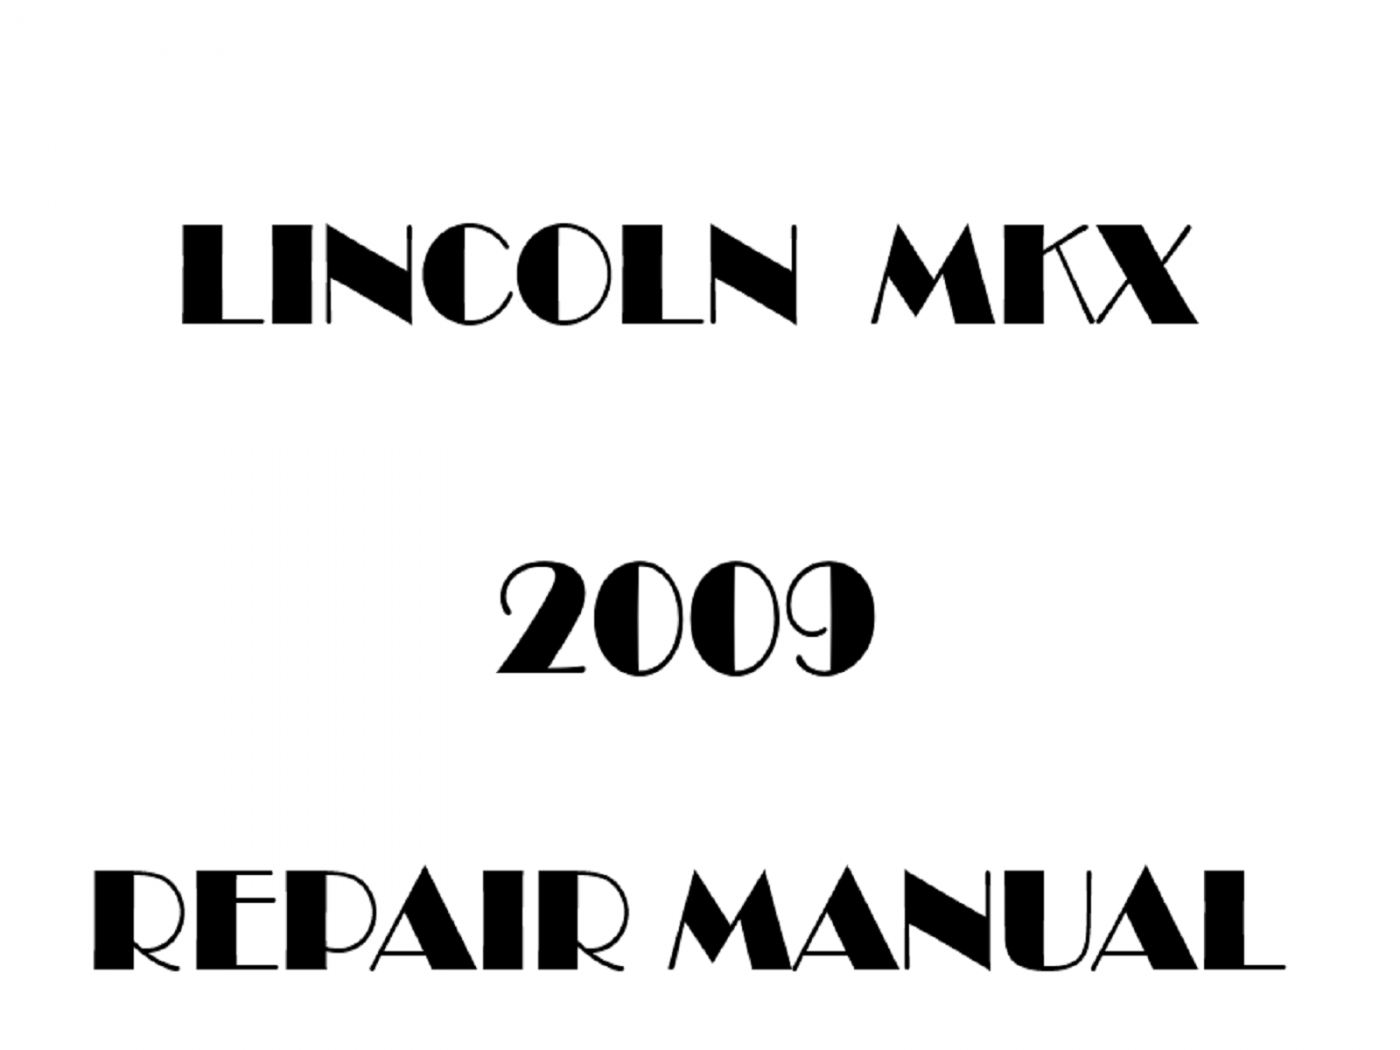 2009 Lincoln MKX repair manual